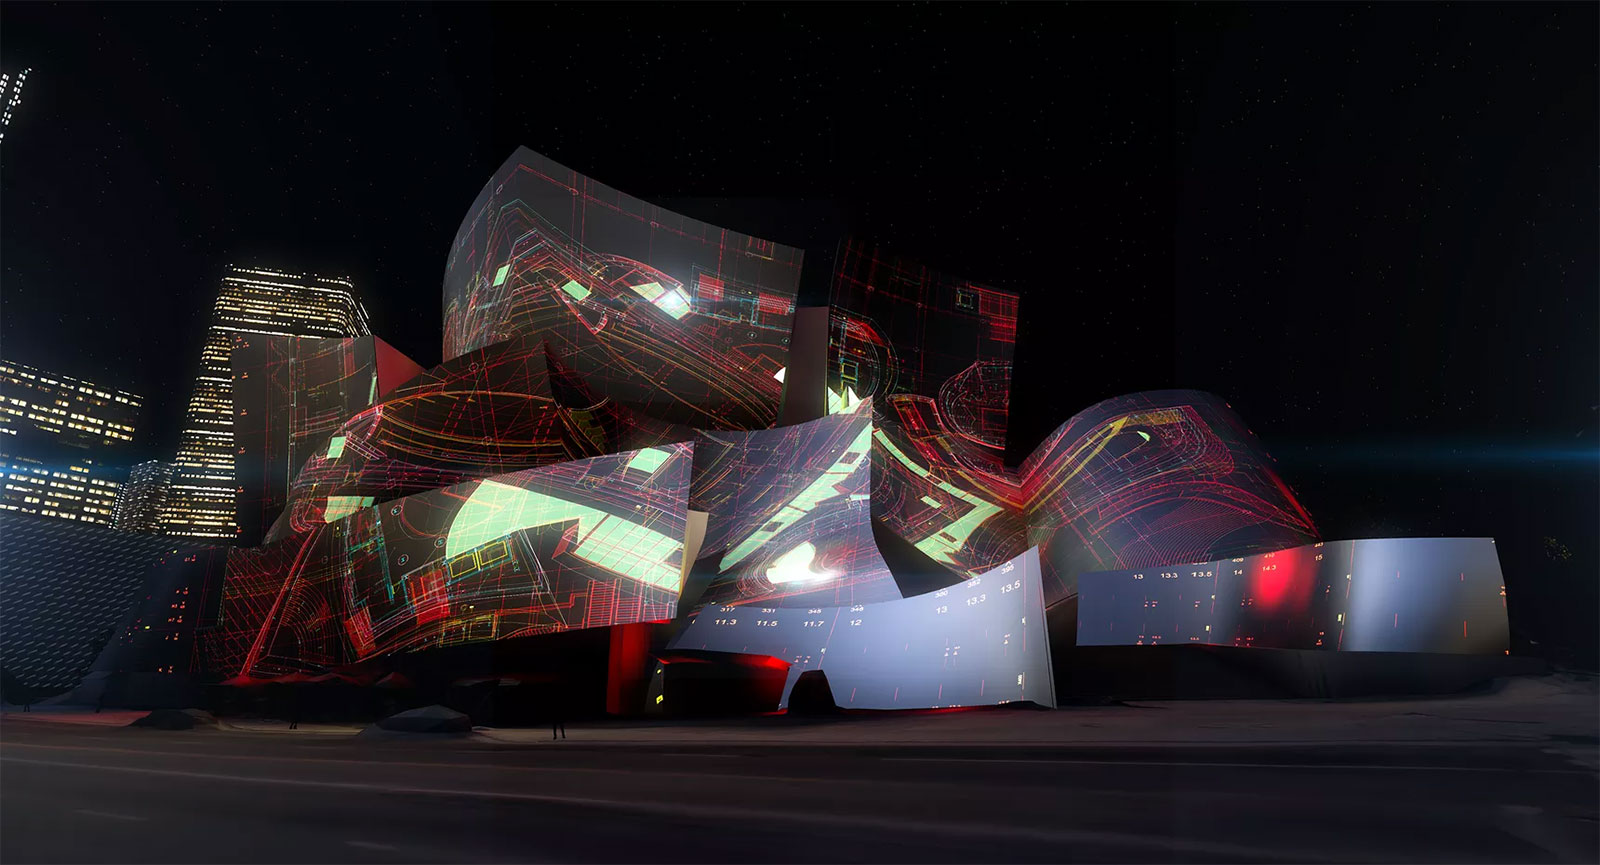 Walt Disney Concert Hall transformation by Refik Anadol Studio